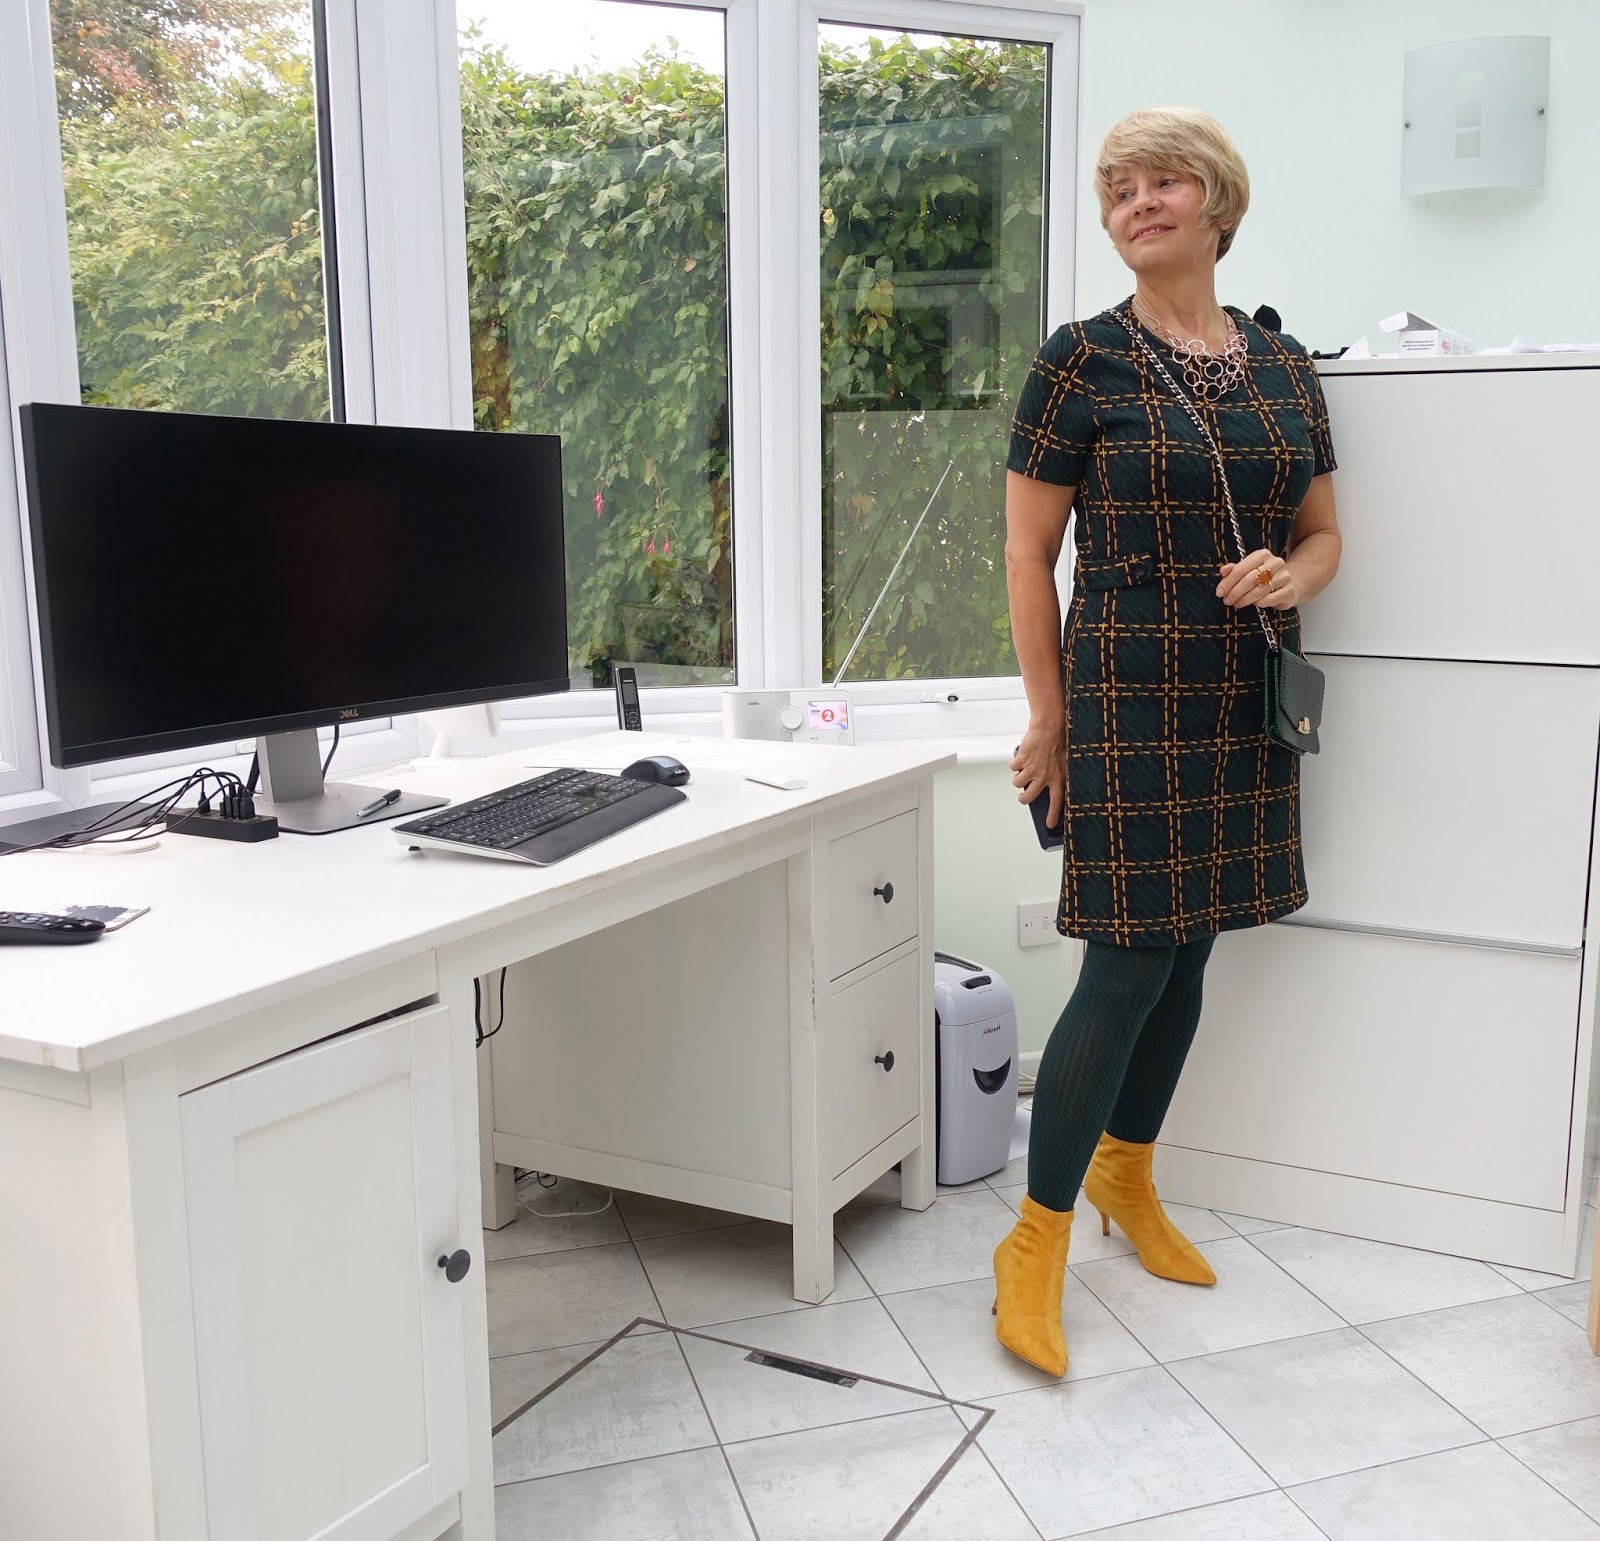 Posed in a home office, a work outfit from supermarket Sainsbury's: forest green and mustard dress worn with mustard ankle boots and a green cross-the-body bag